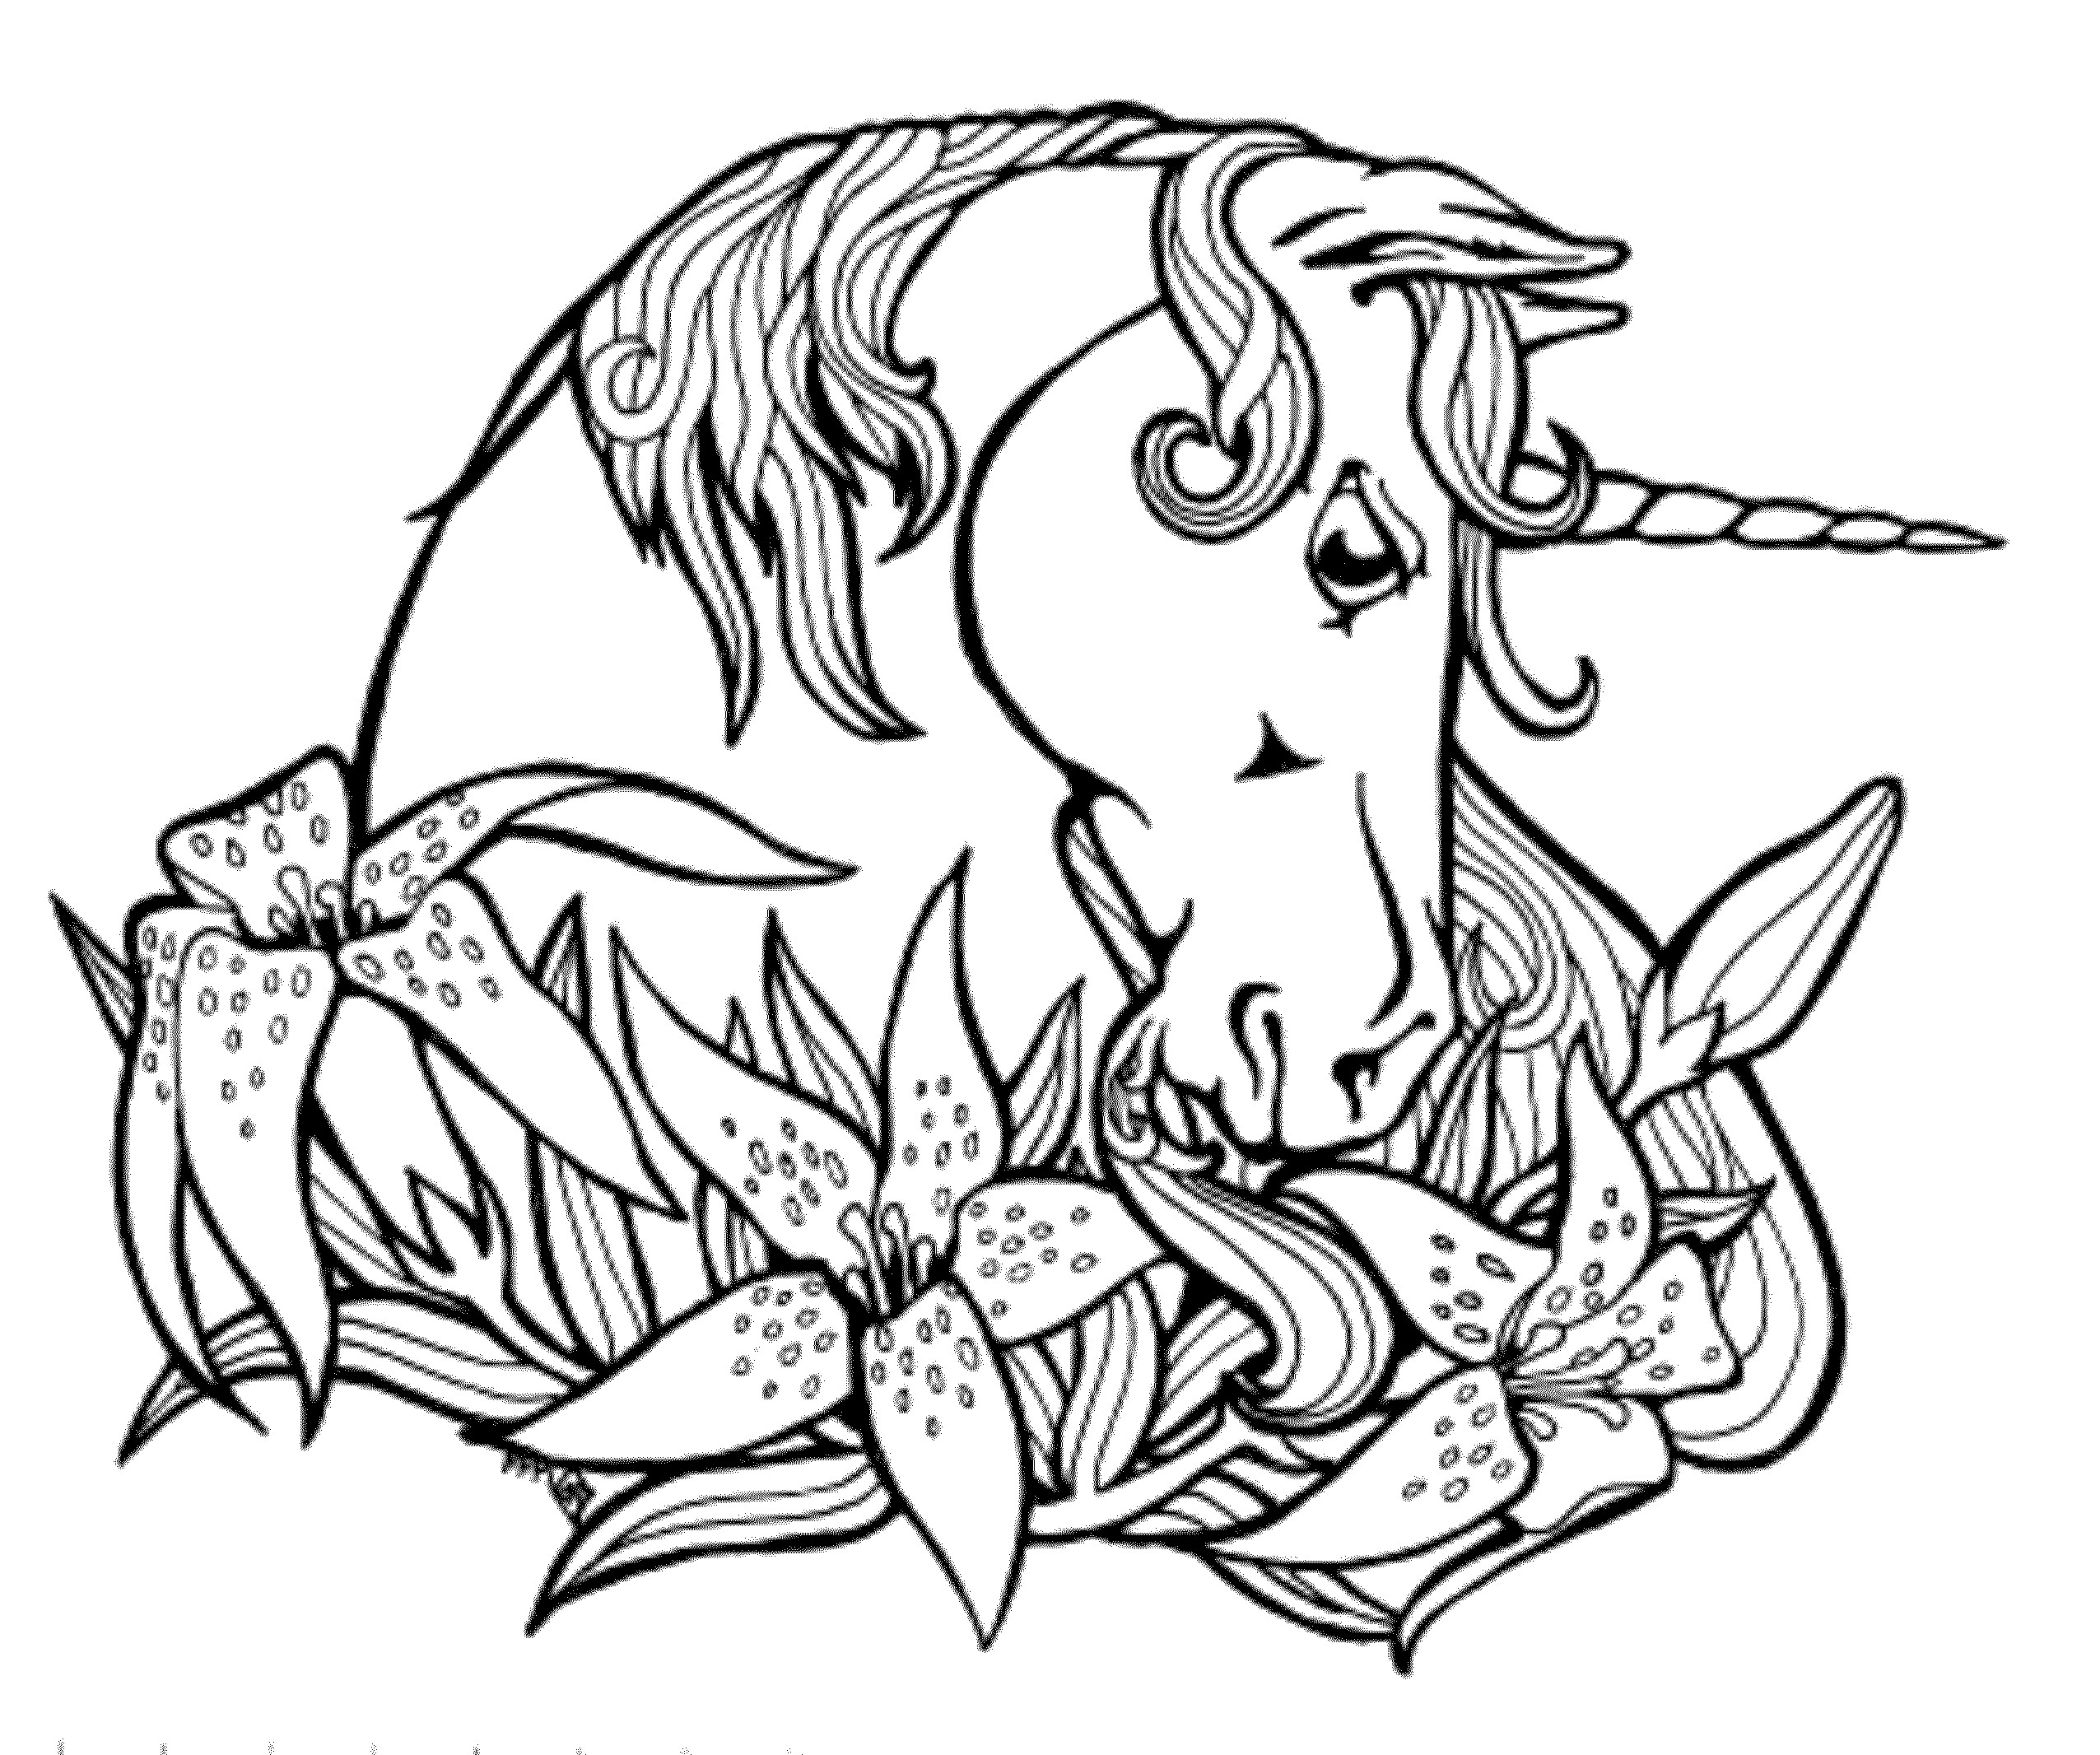 Unicorn Coloring Pages For Kids  Print & Download Unicorn Coloring Pages for Children